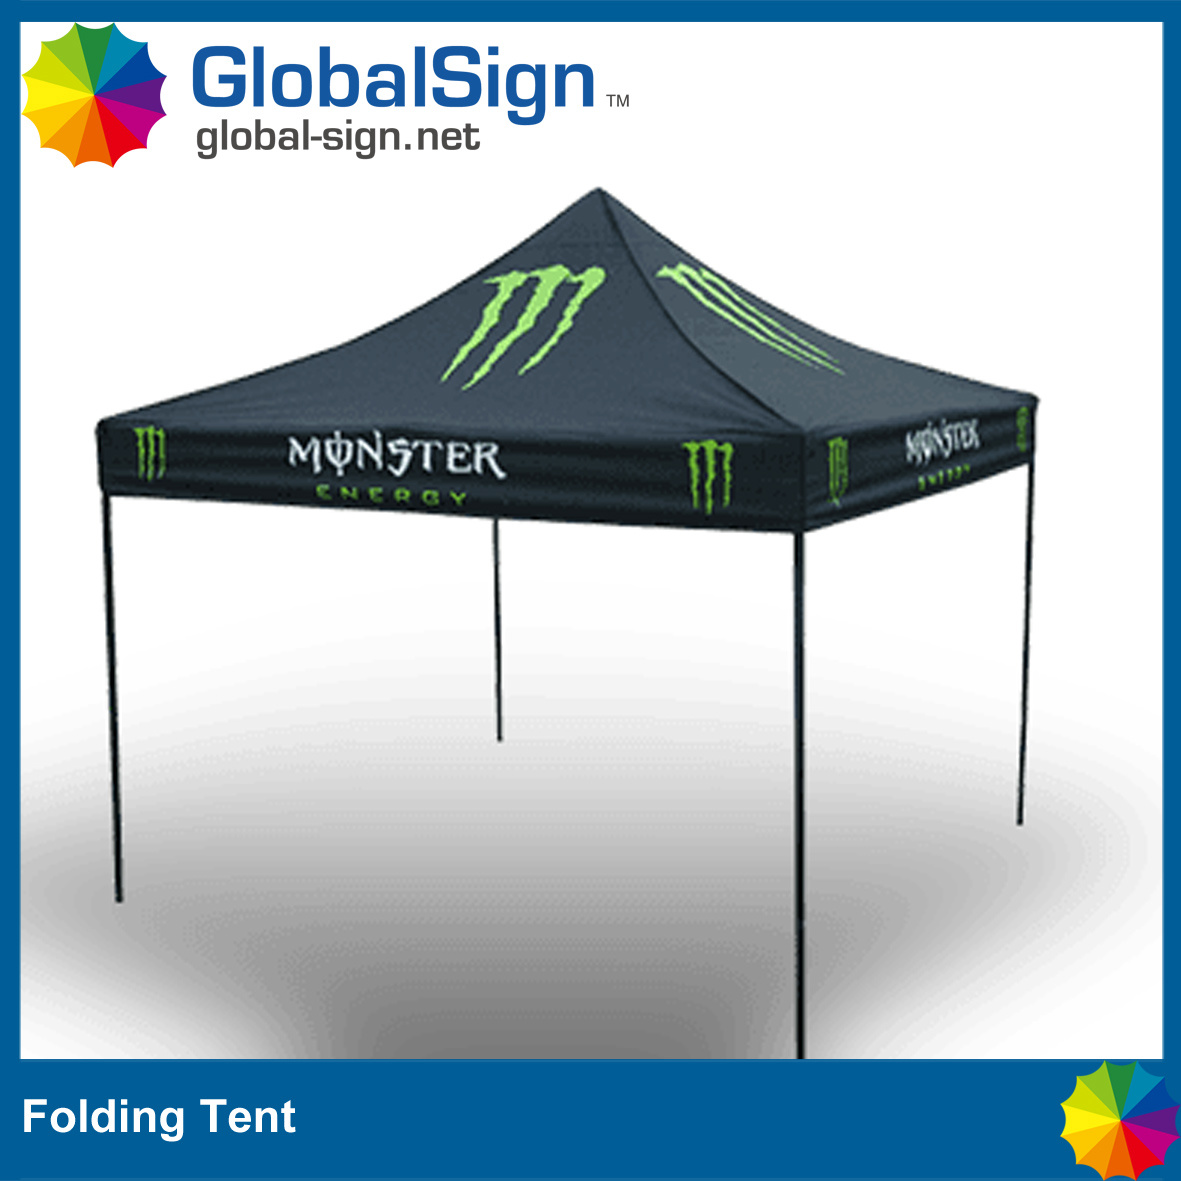 China Customized Size Steel Frame Pop up Tent for Events - China Advertising Pop up Tent Marquee Tent  sc 1 st  Shanghai Globalsign Display and Sign Co. Ltd. & China Customized Size Steel Frame Pop up Tent for Events - China ...